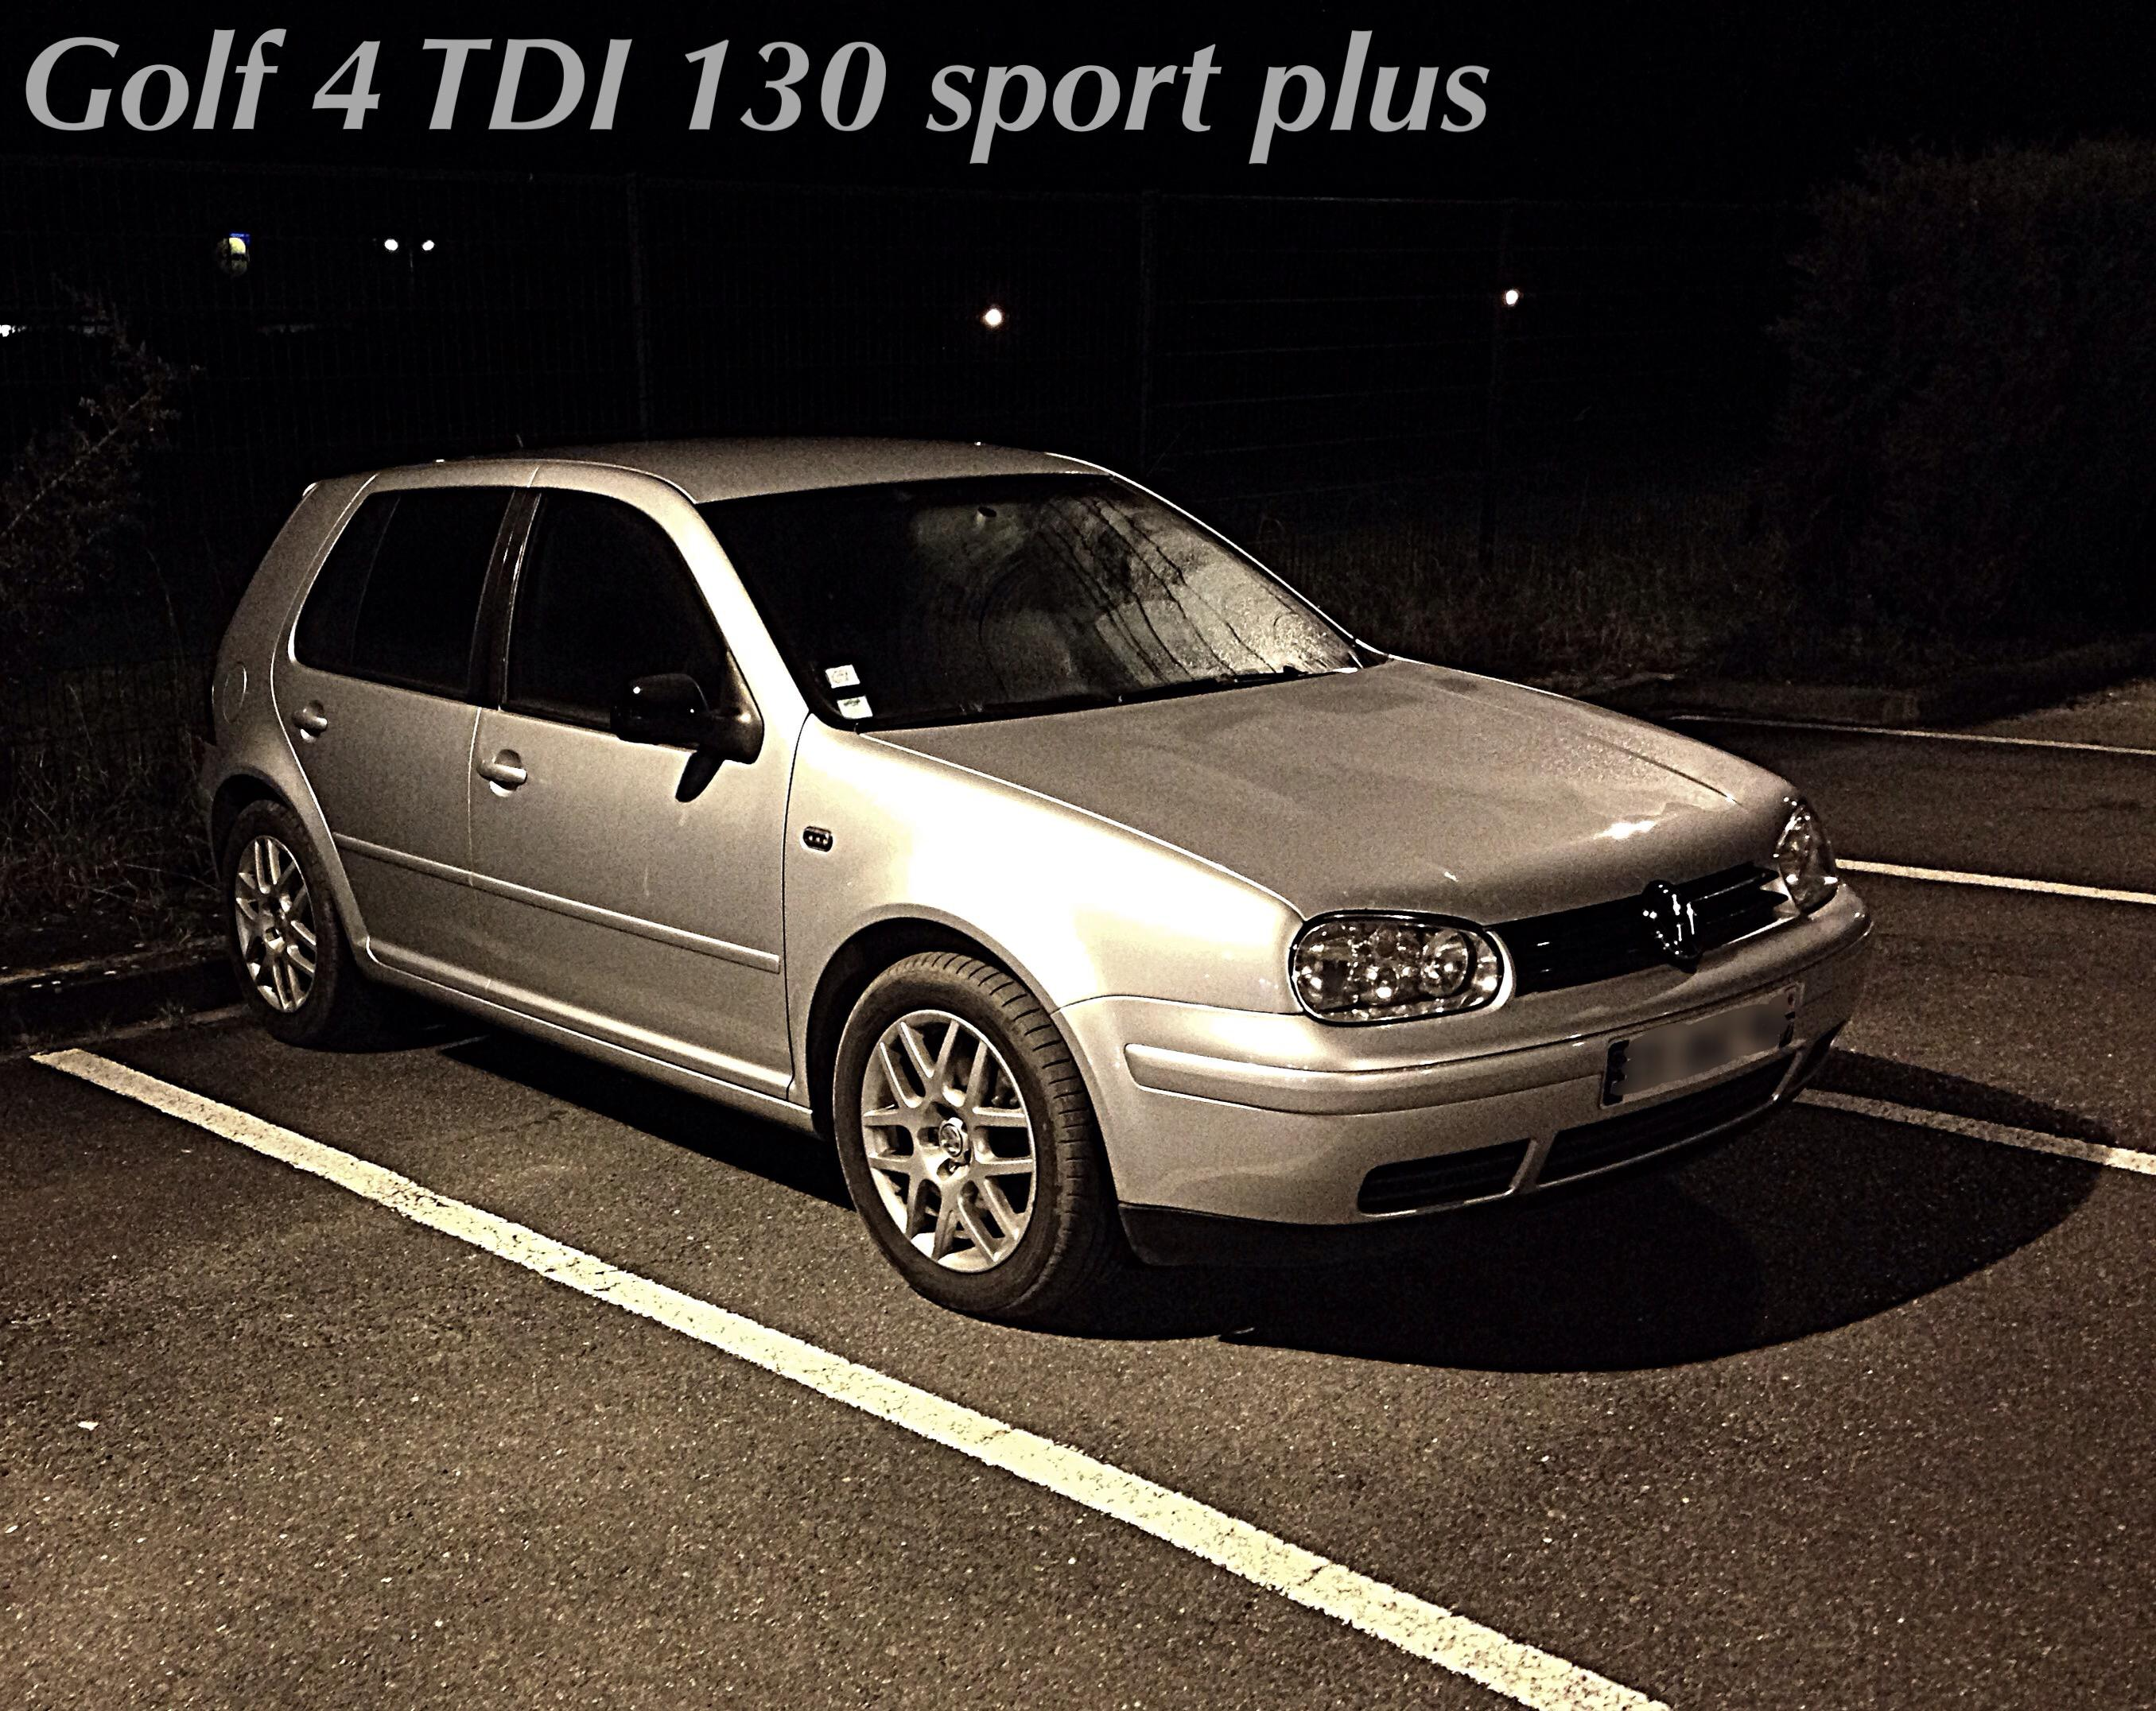 vw golf iv tdi 130 sport edition 2003 garage des golf iv tdi 130 forum volkswagen golf iv. Black Bedroom Furniture Sets. Home Design Ideas